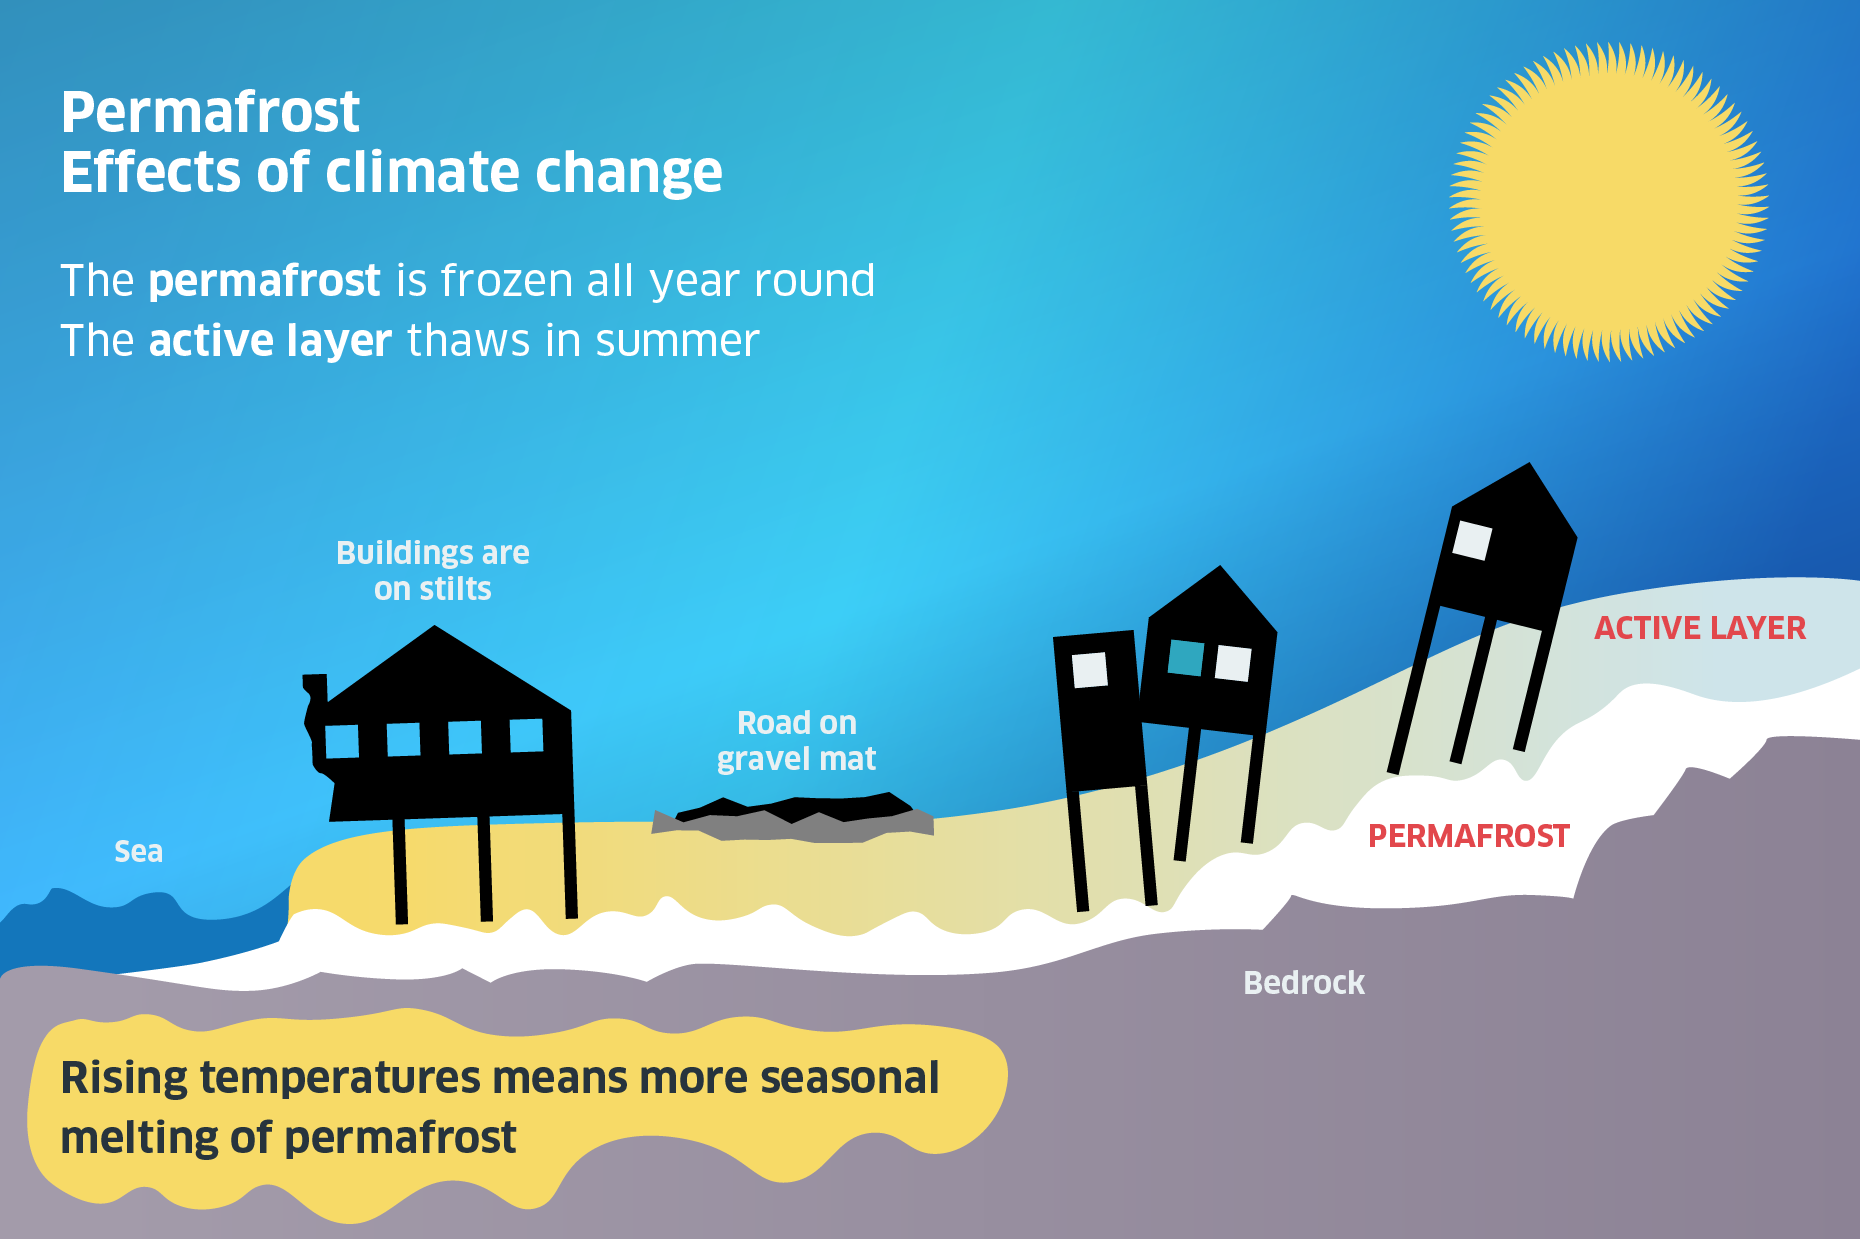 Diagram showing effect of climate change on permafrost in summer